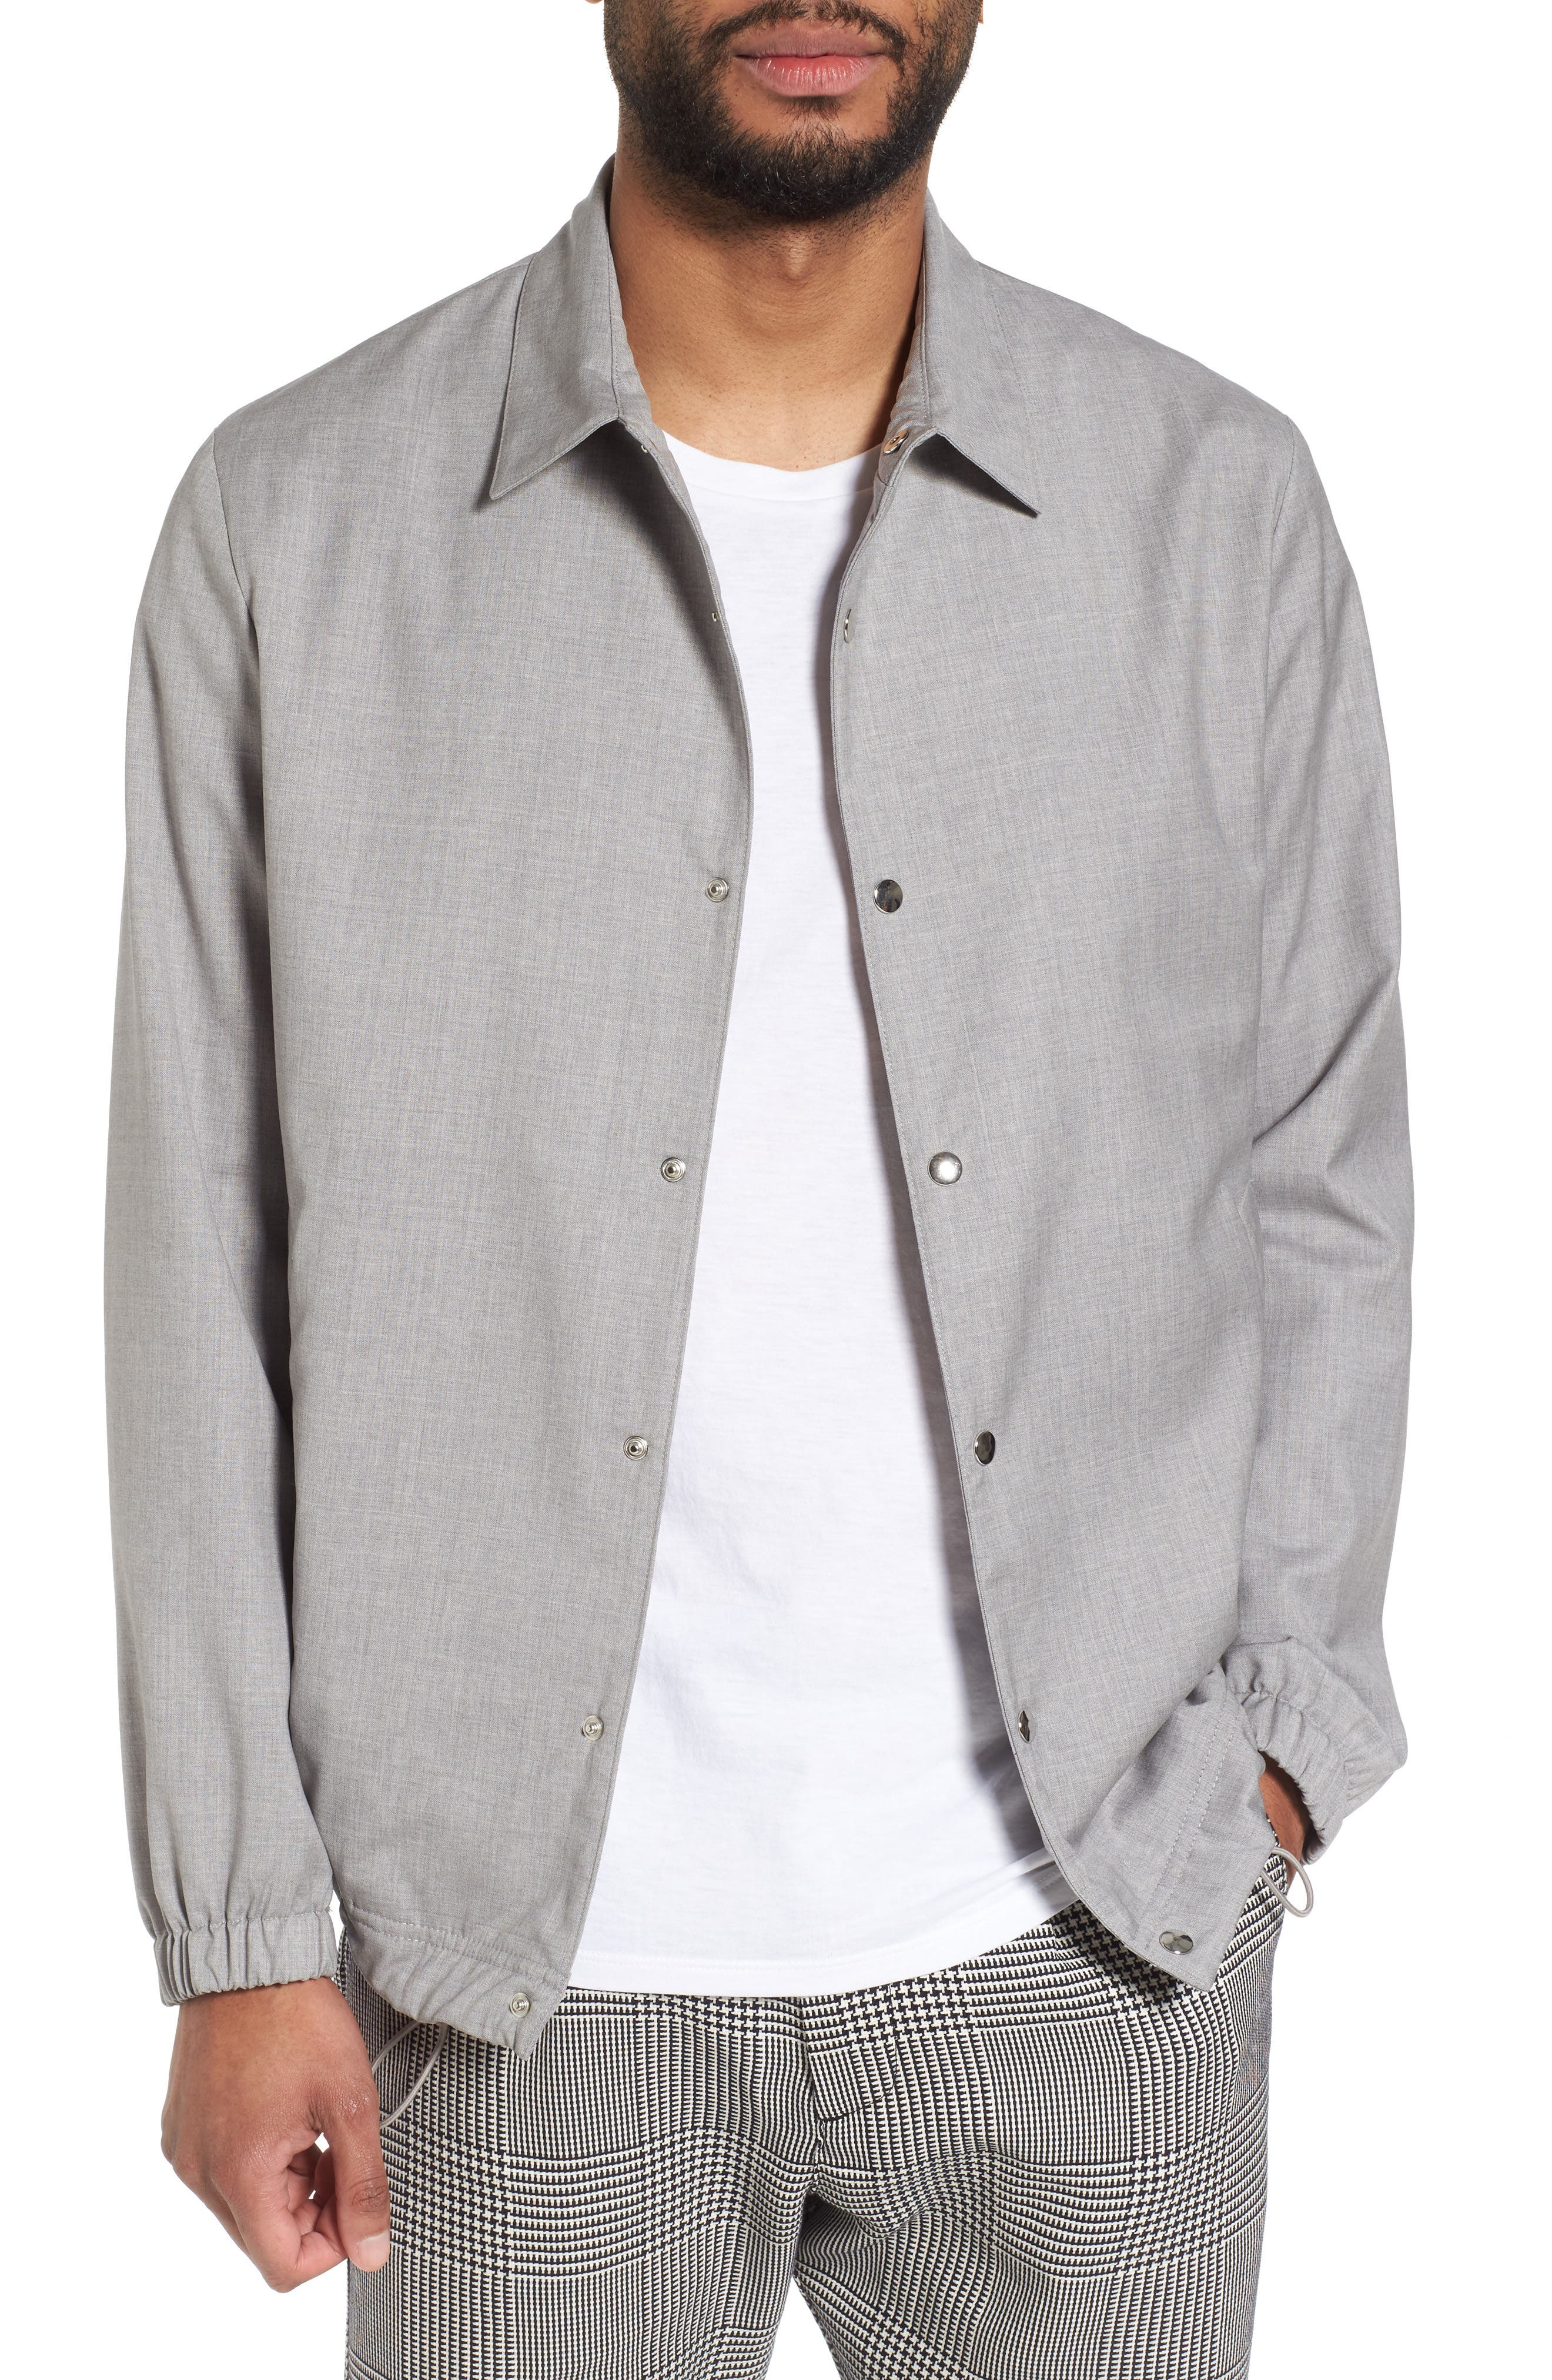 Storm System Wool Coach Jacket,                         Main,                         color, Light Grey